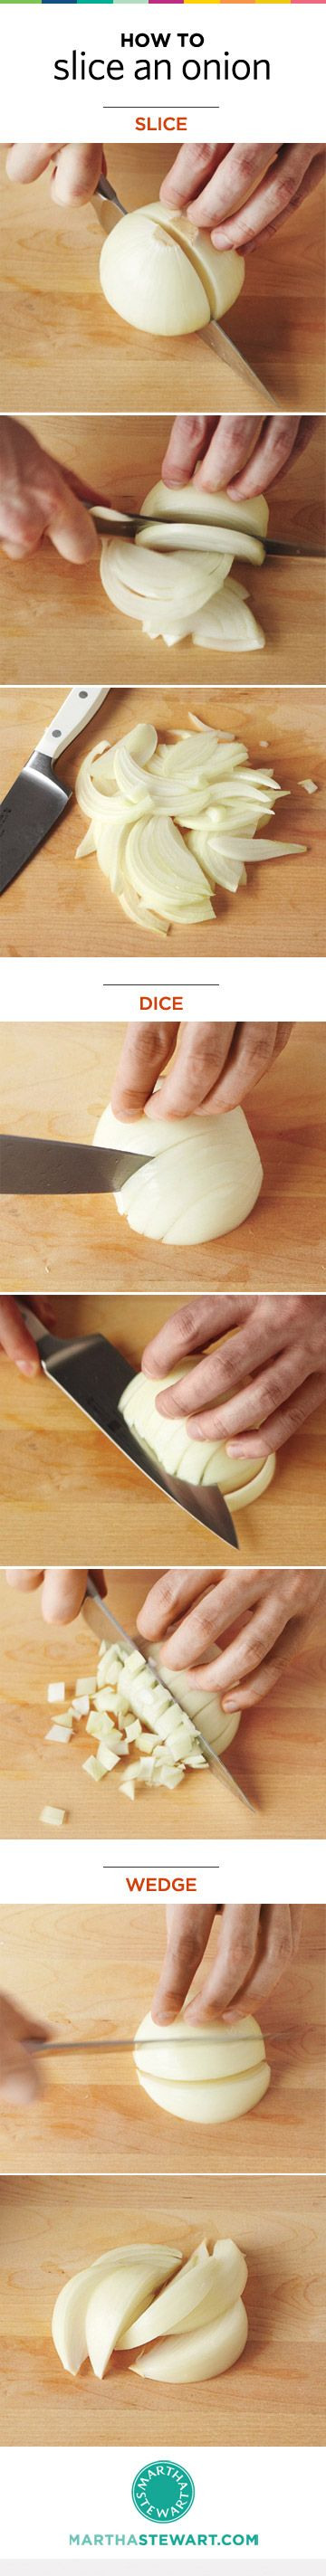 The 3 basics ways to cut an onion -- so many recipes call for them, save time and effort by doing it right! everydayfood.com: How To Cut An Onions, Cooking Basic, Slices Onions, Basic Onions, Everydayfood Com, How To Cut Onions, Recipes Call, Facs Food, Kitchens Basic